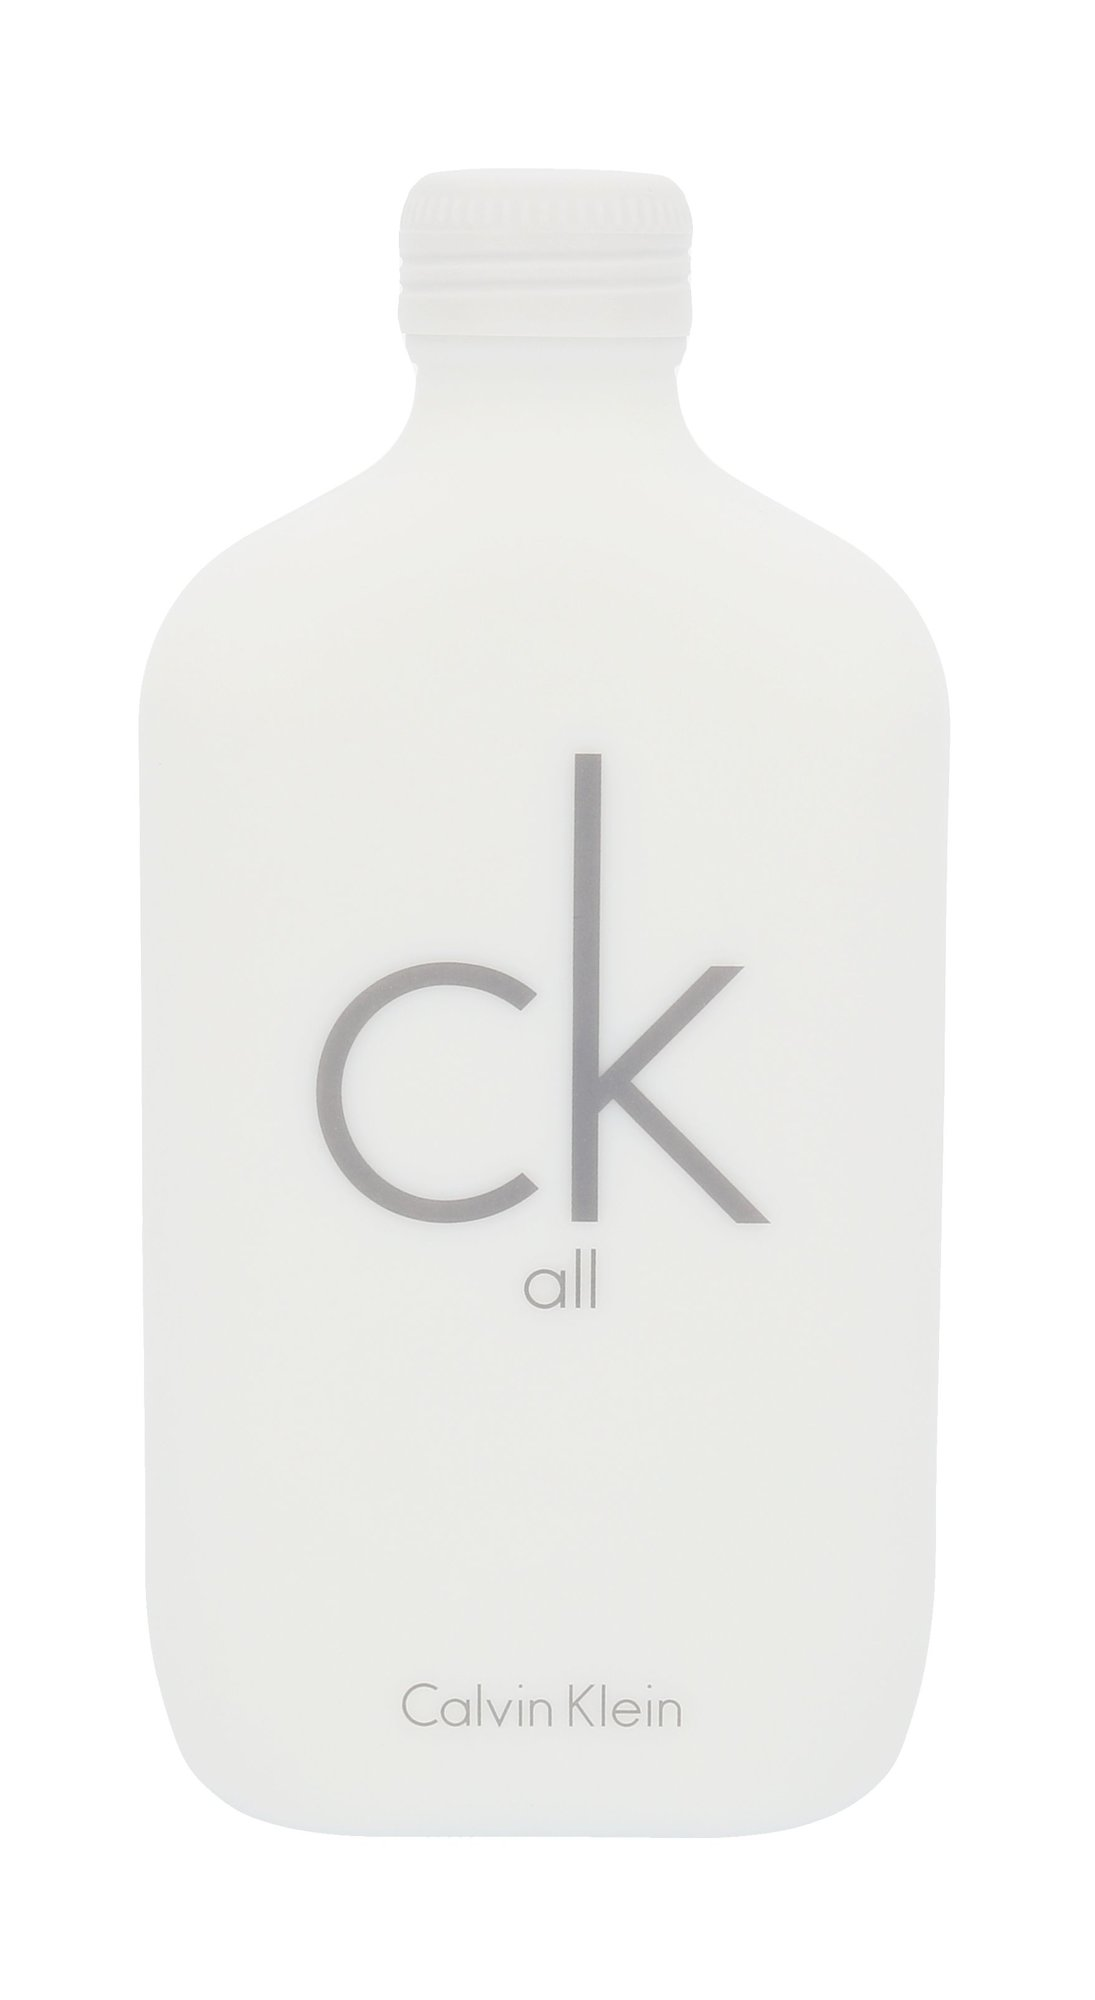 Calvin Klein CK All Eau de Toilette 200ml